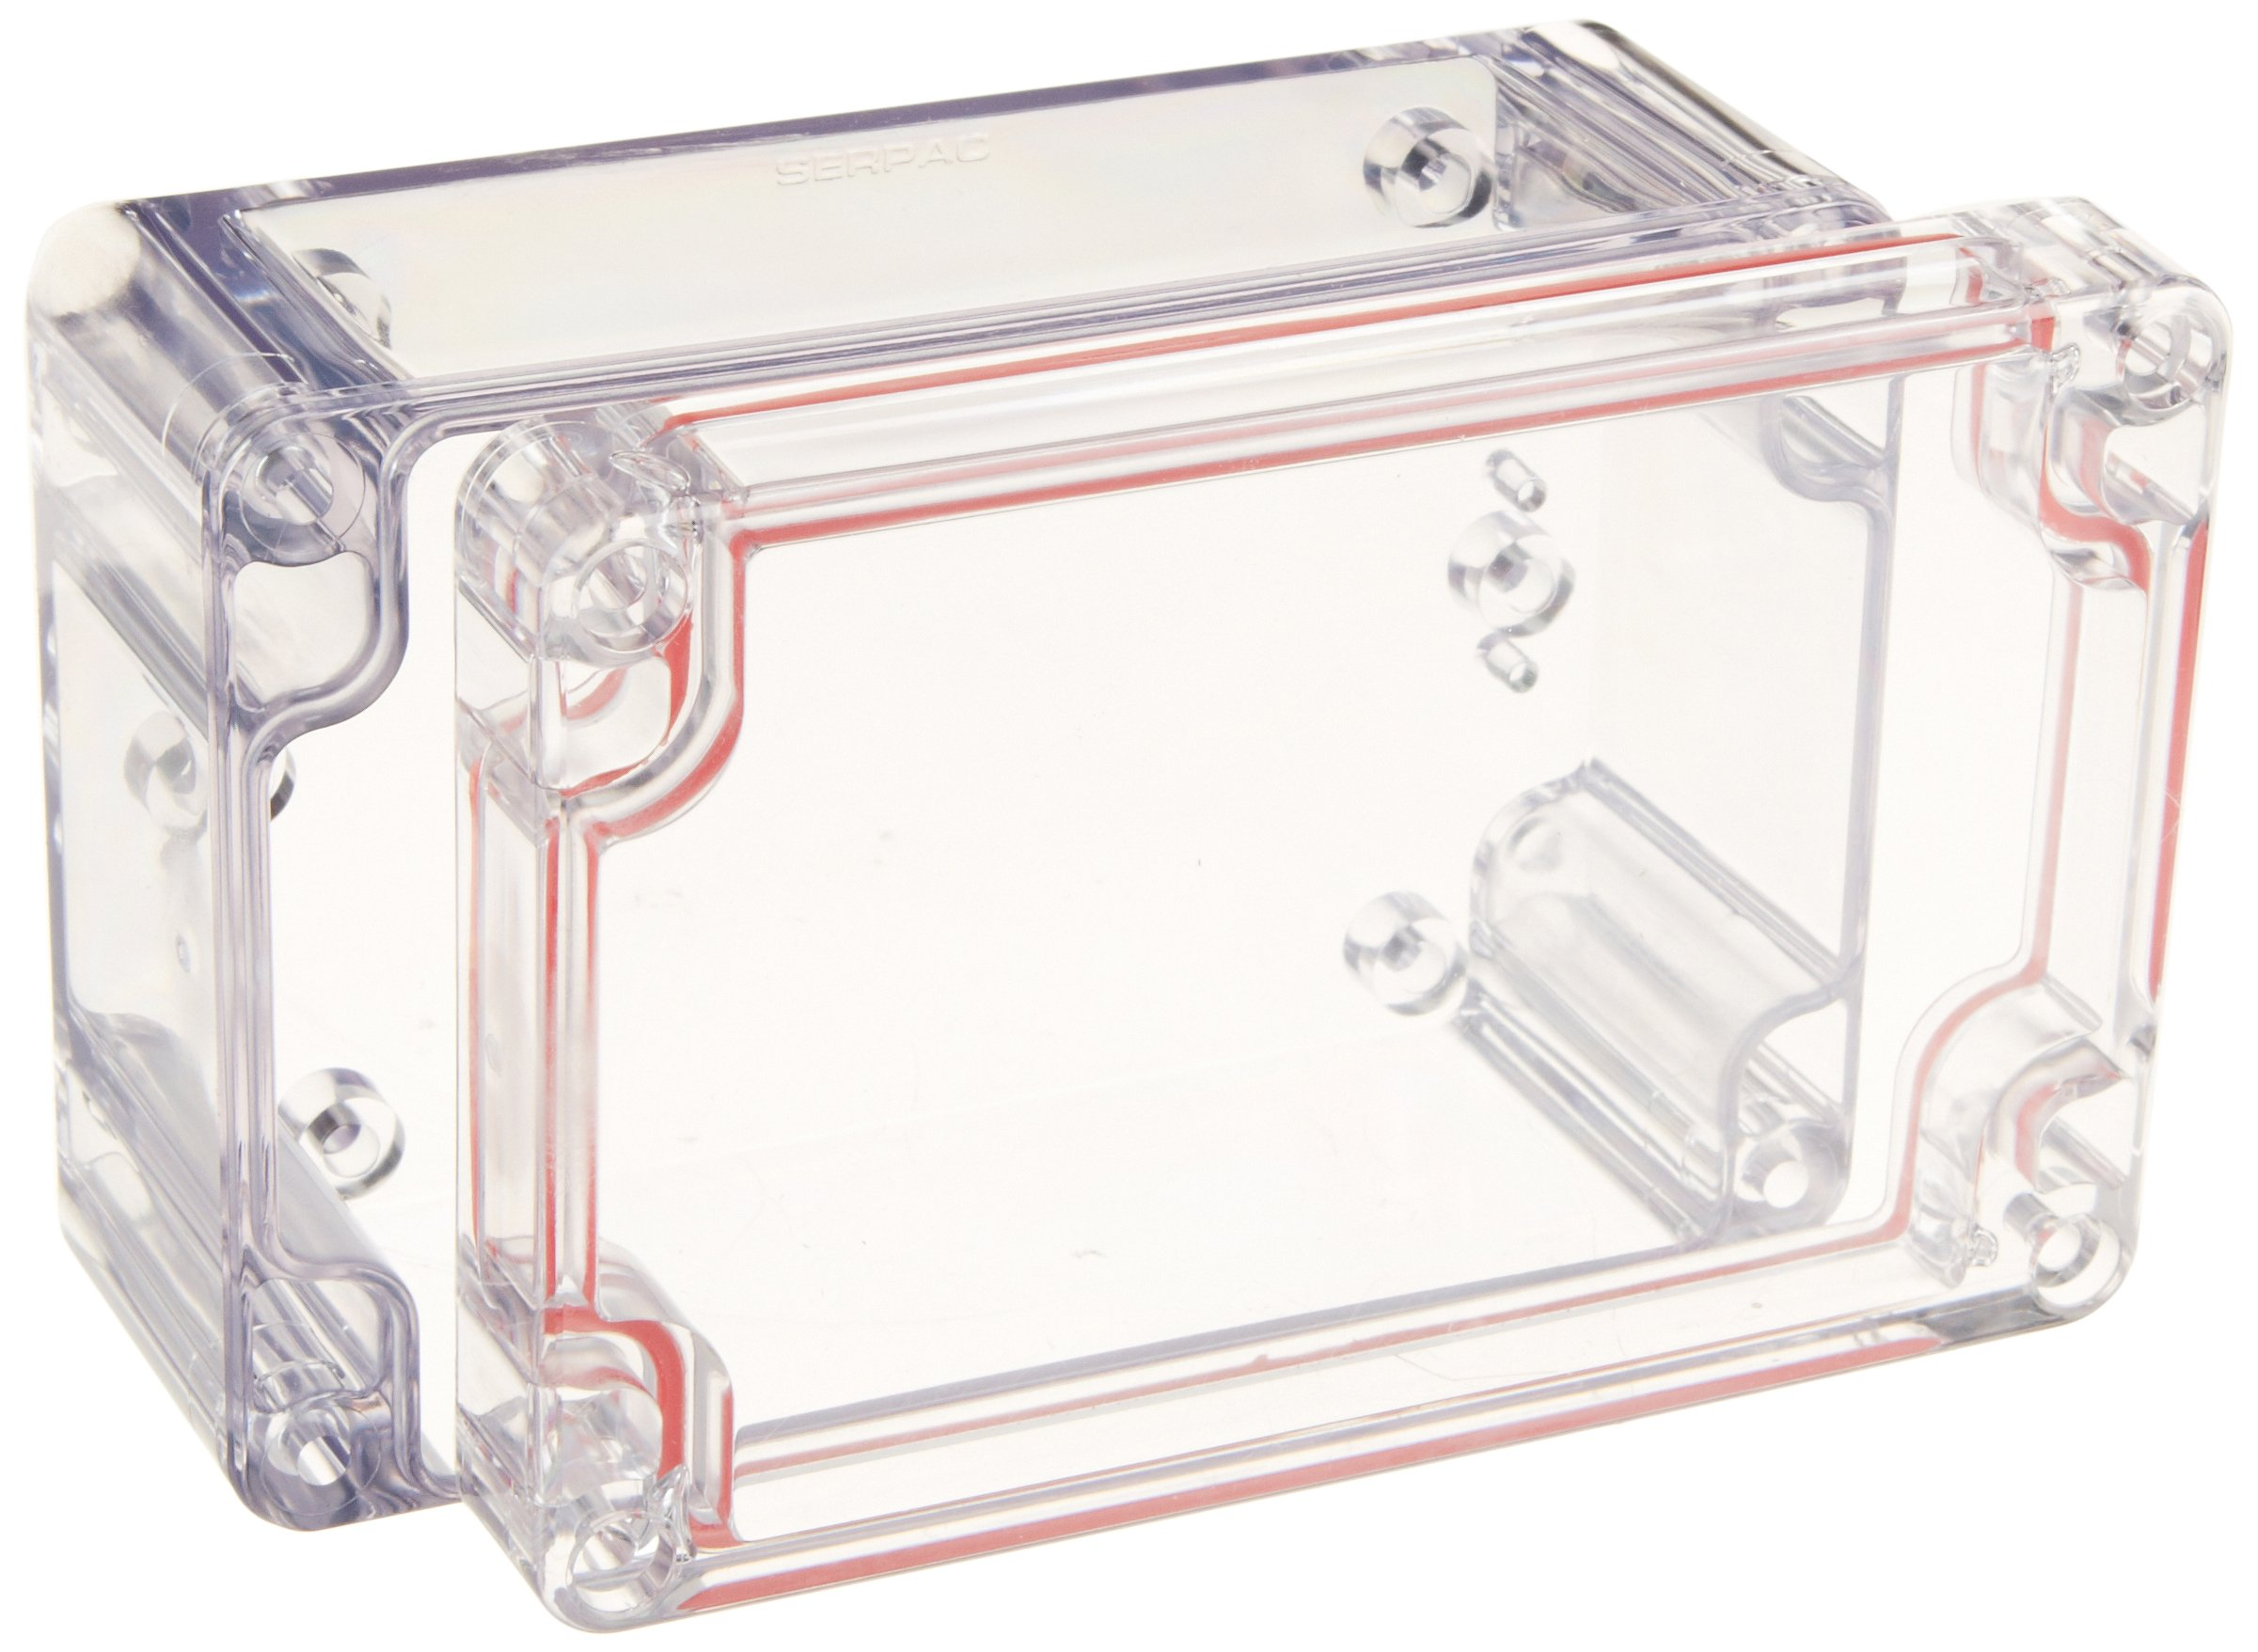 Serpac RB53-1TC1BC Polycarbonate Plastic Enclosure, 4.72'' Length x 3-5/32'' Width x 2-11/64'' Height, Clear Top/Bottom by Serpac